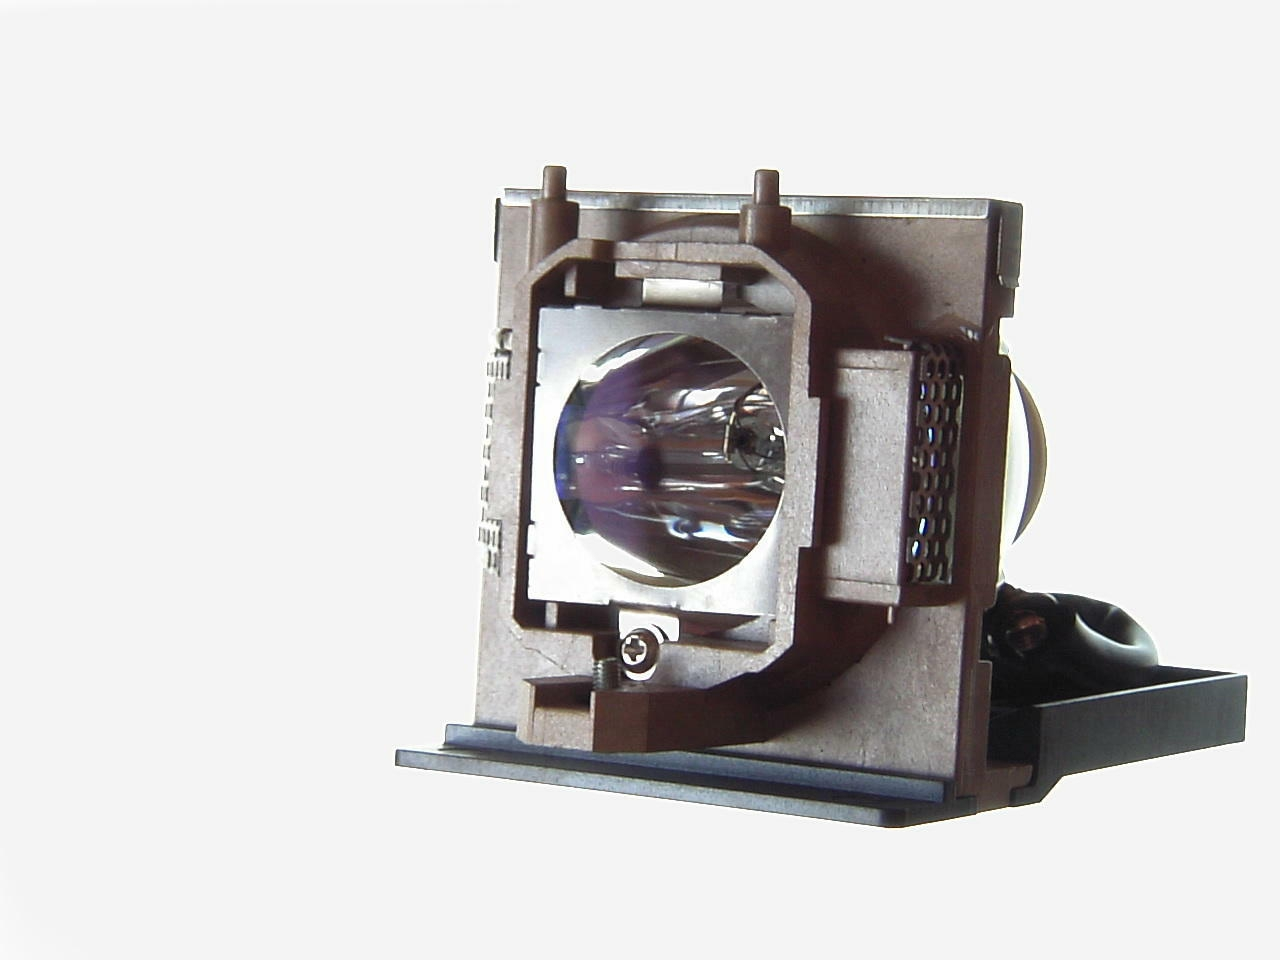 MEDION VG10 Lamp Replacement for MD30055